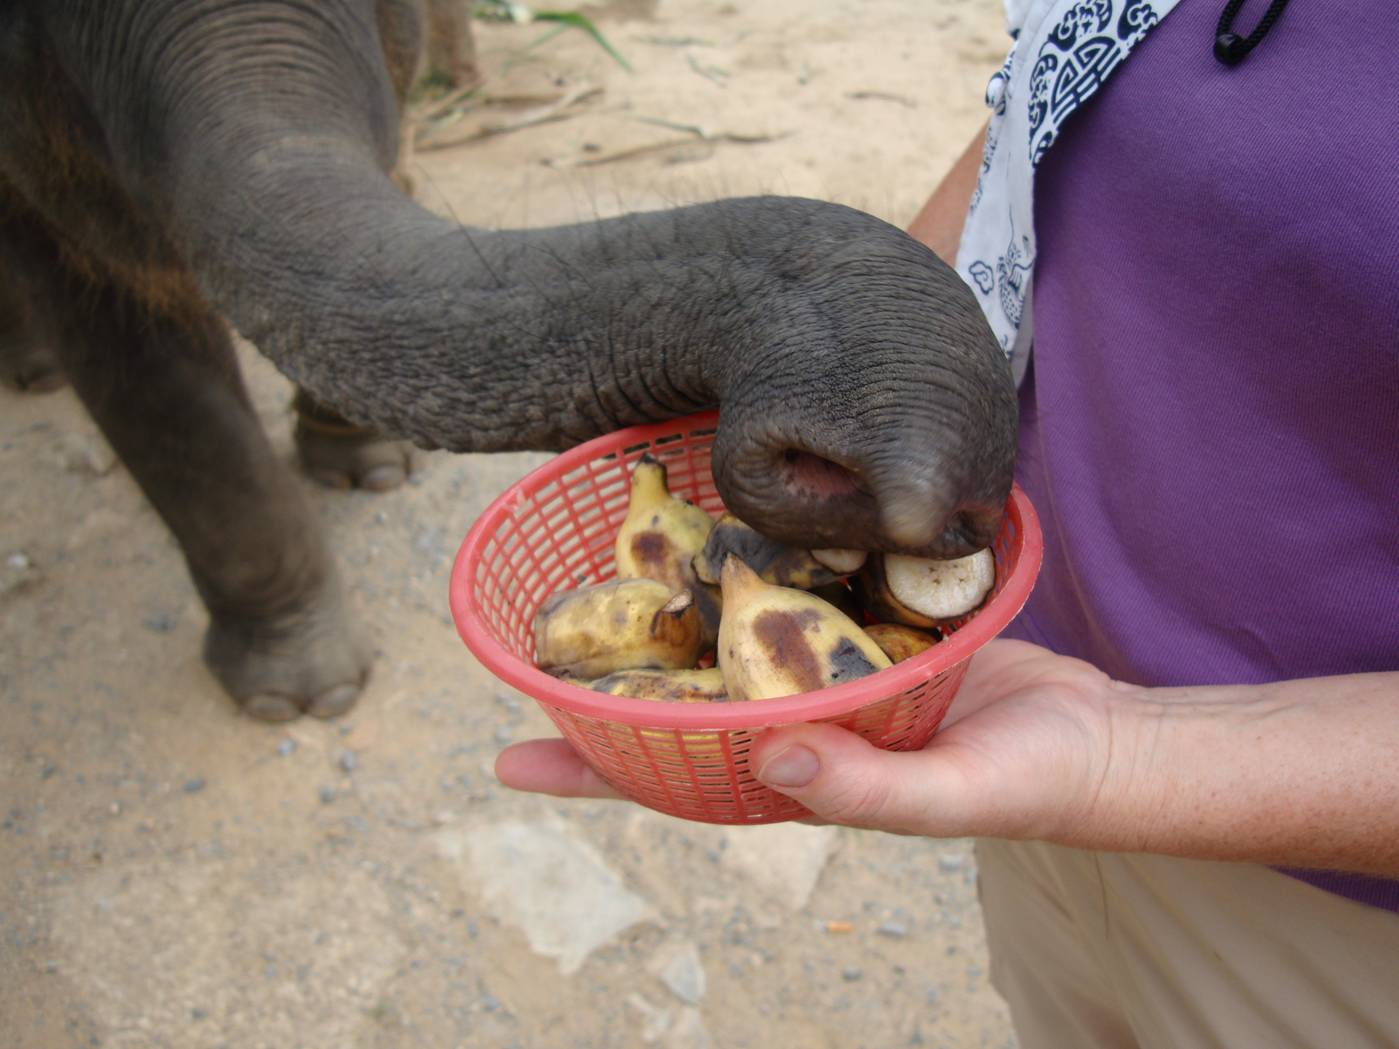 Picture:  The baby elephant goes for a banana chunk with his prehensile trunk.  Phuket Island, Thailand